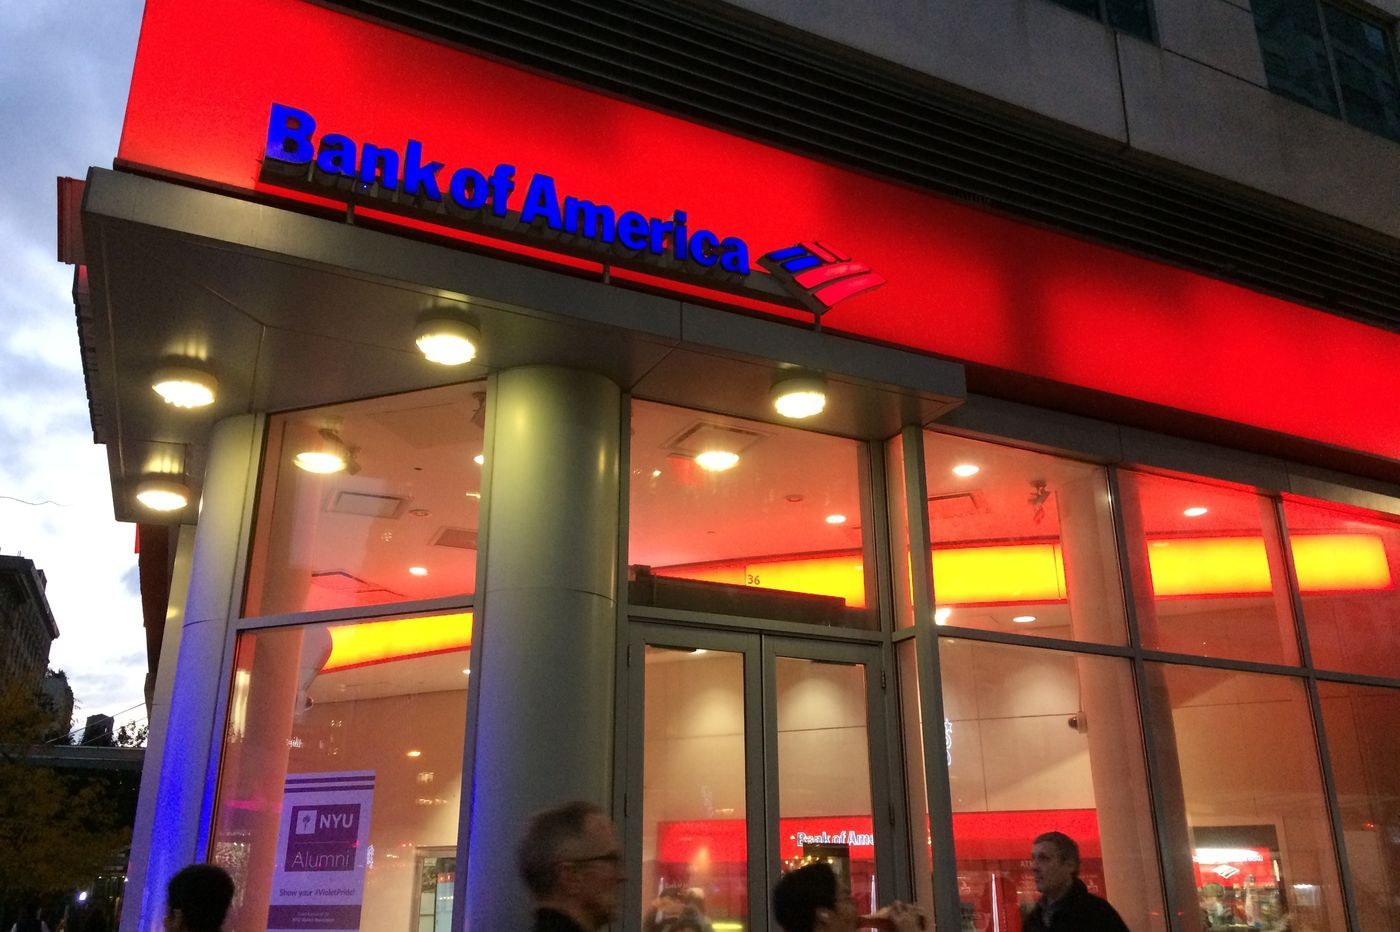 Bank of America cuts business ties with detention centers, private